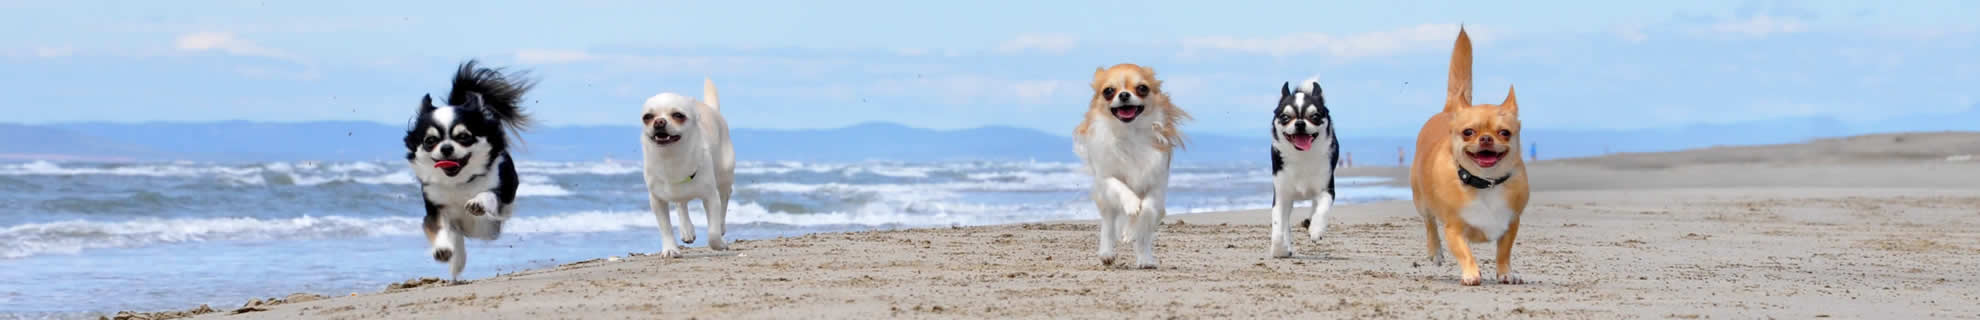 chihuahuas on beach